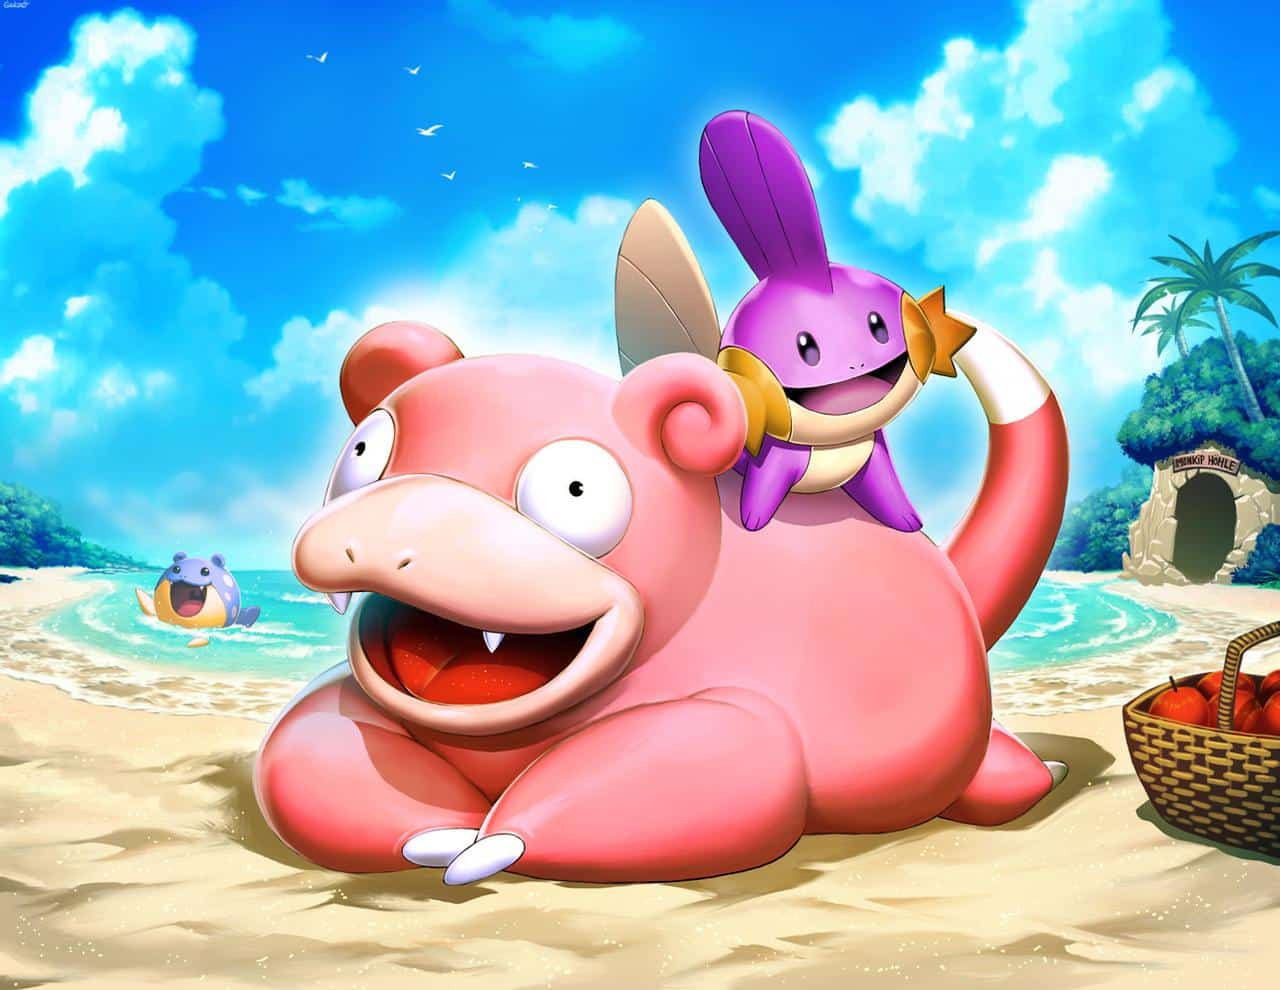 slowpoke really doesn't care if he ever learns how to run faster. Mudkip on the other hand...